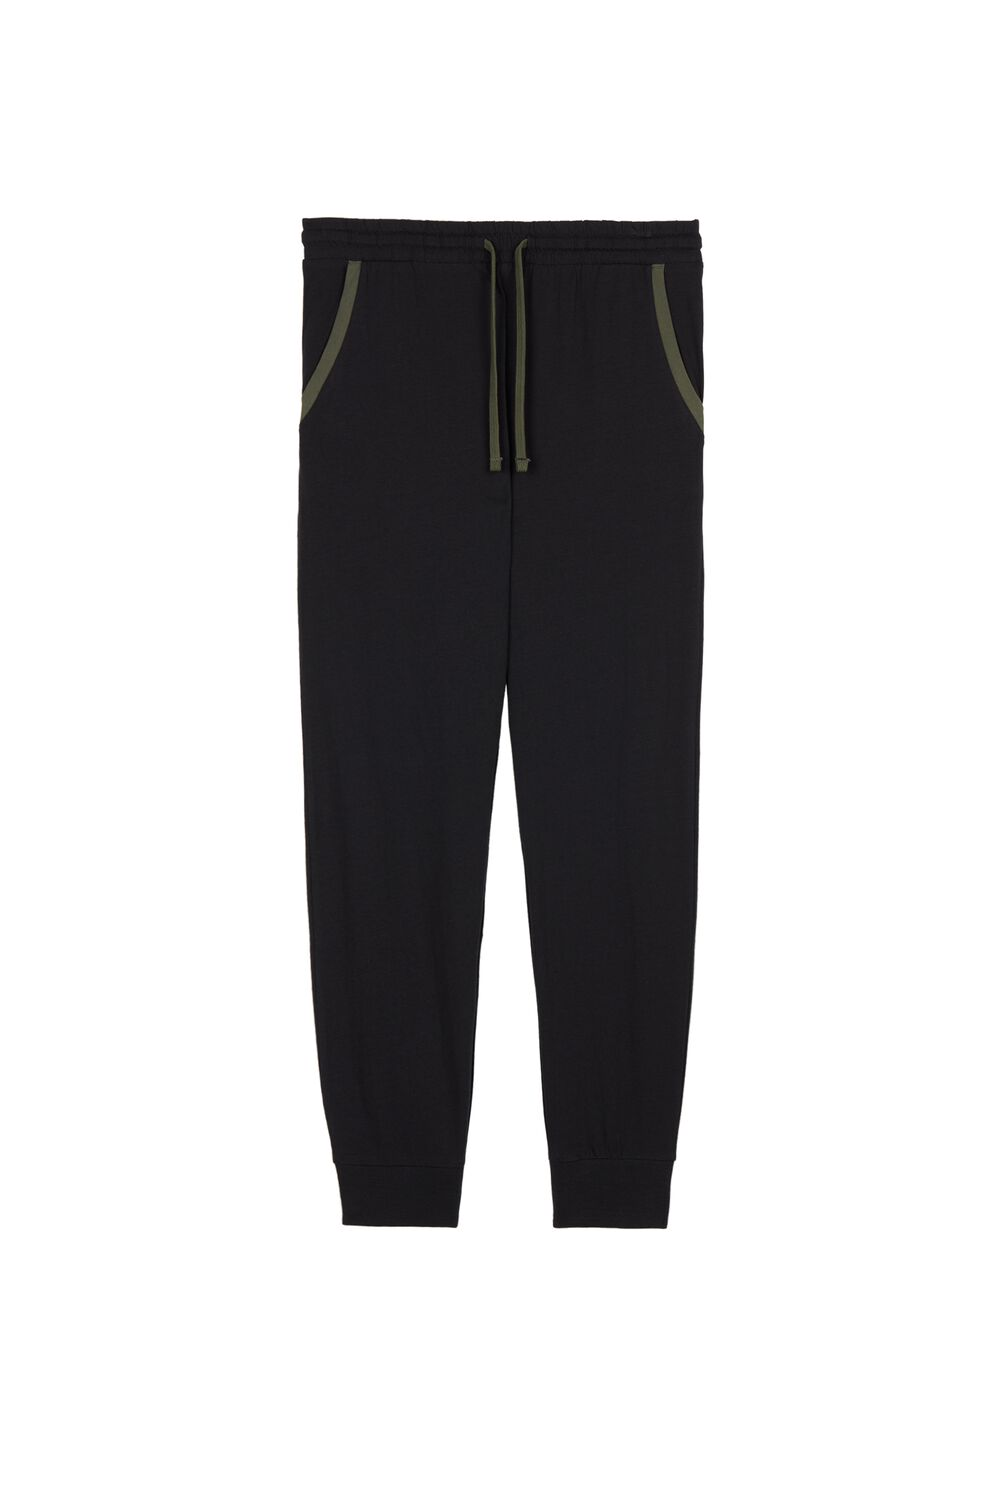 Long Jersey Trousers with Piped Pockets